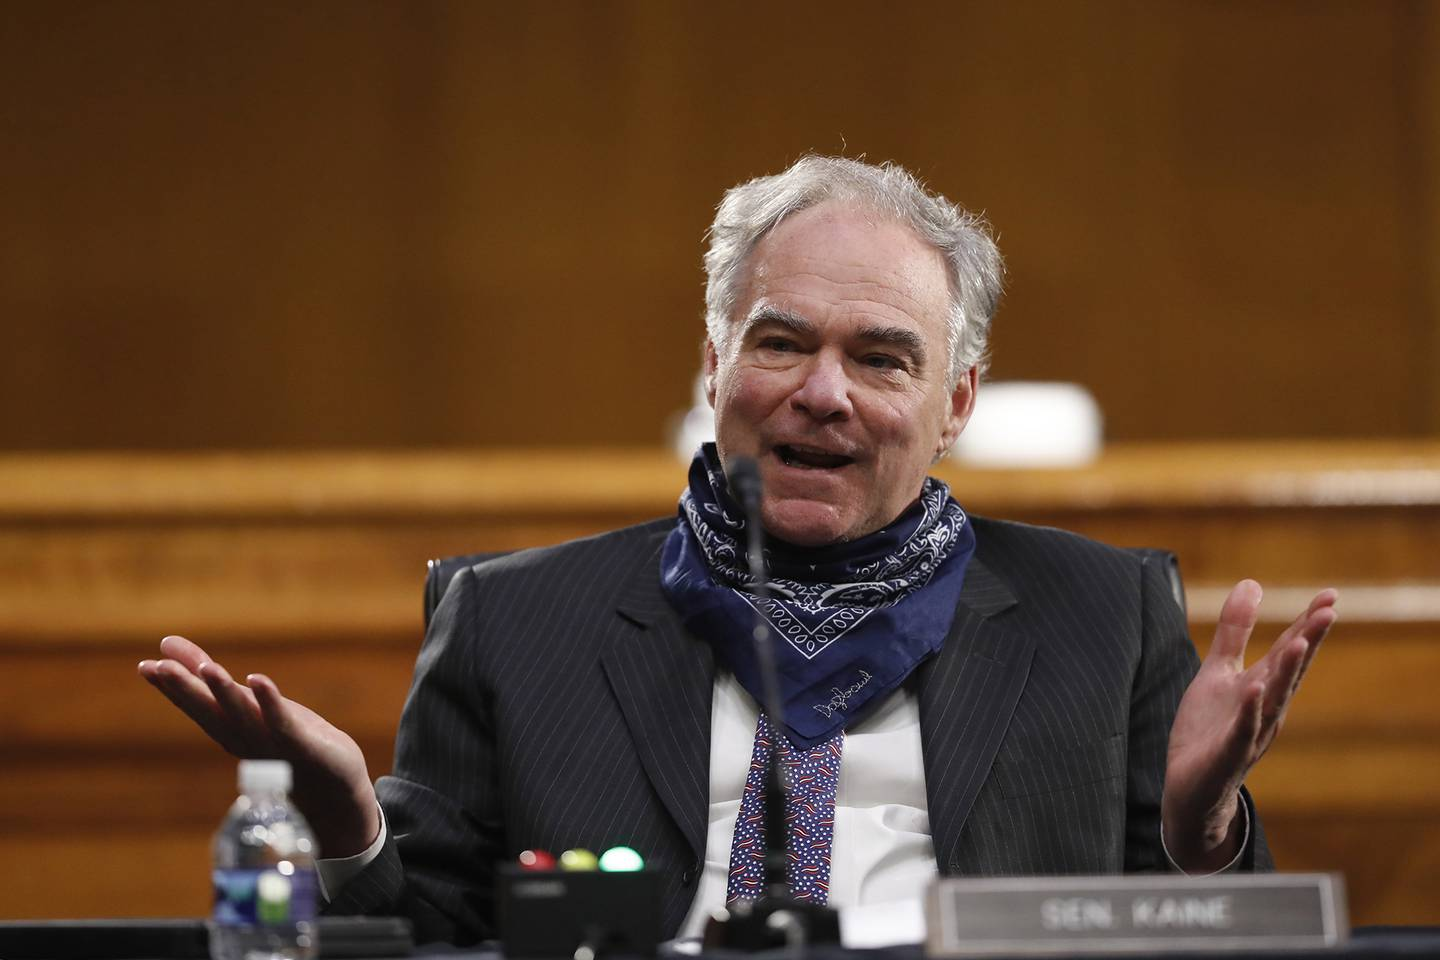 Sen. Tim Kaine, D-Va., speaks during a Senate Health Education Labor and Pensions Committee hearing on new coronavirus tests on Capitol Hill